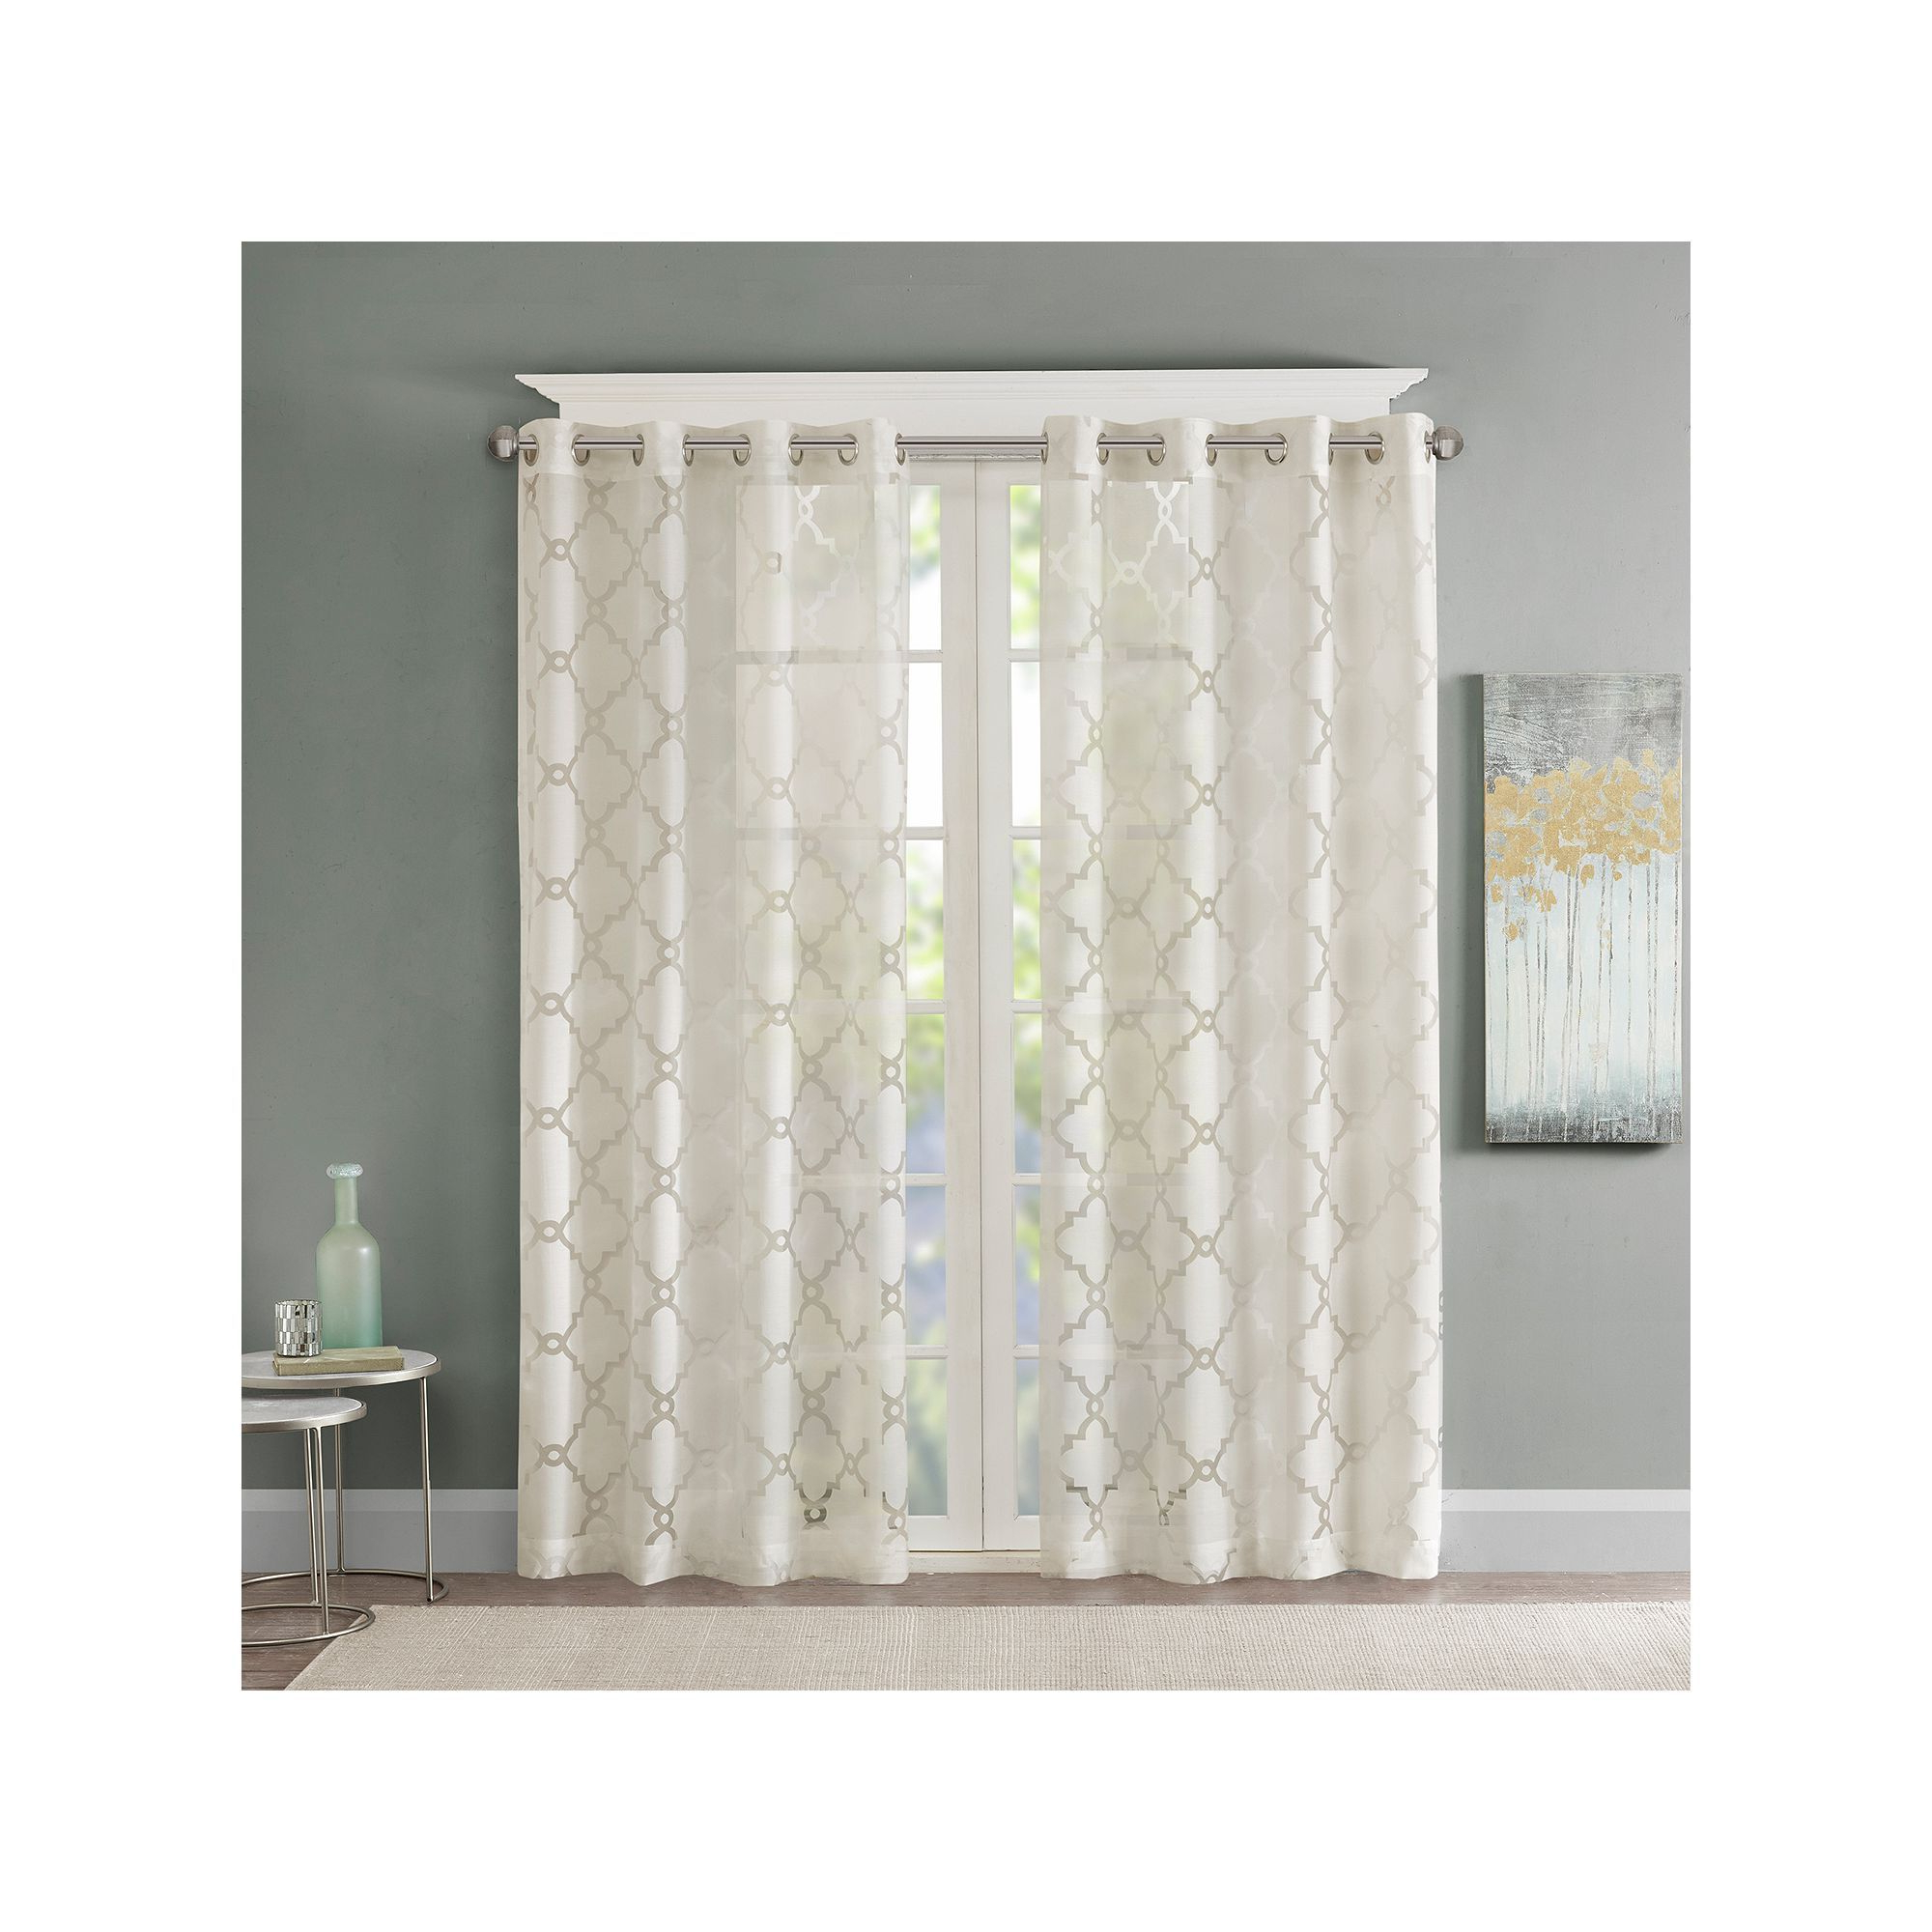 Fashionable Laya Fretwork Burnout Sheer Curtain Panels Intended For Madison Home Usa 1 Panel Laya Fretwork Sheer Window Curtain (View 6 of 20)